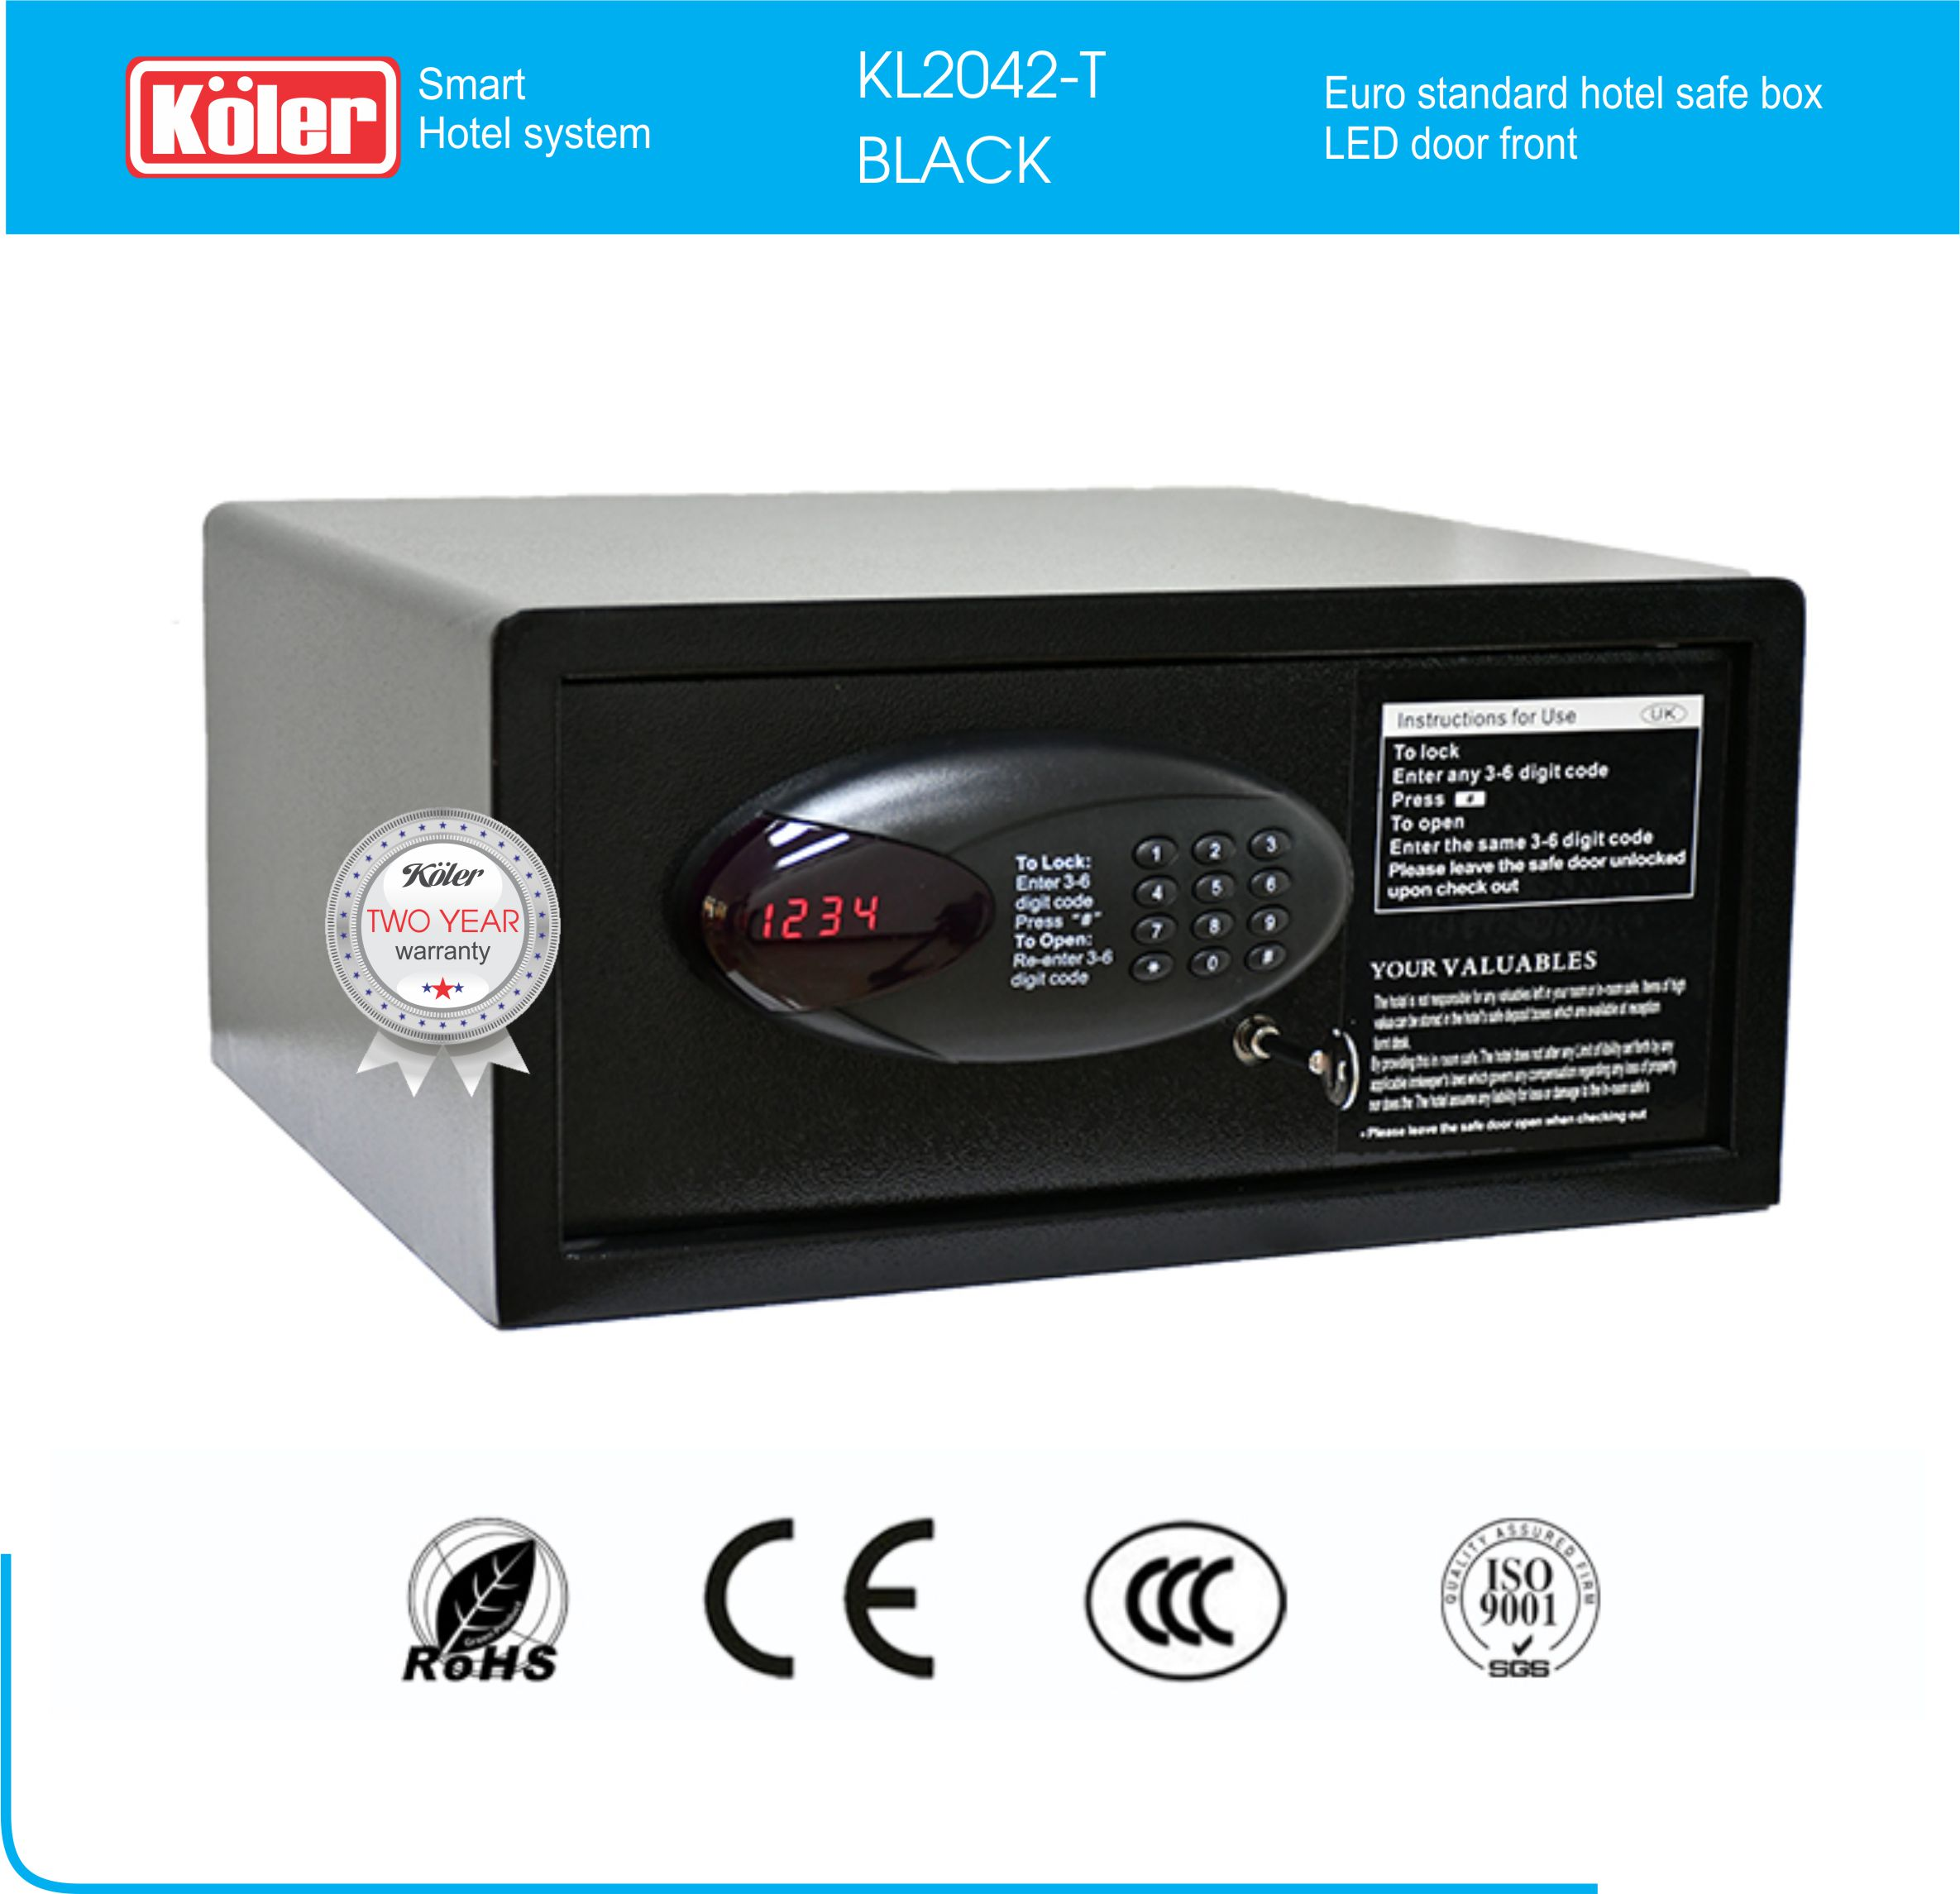 Safe box KL2042-T Black